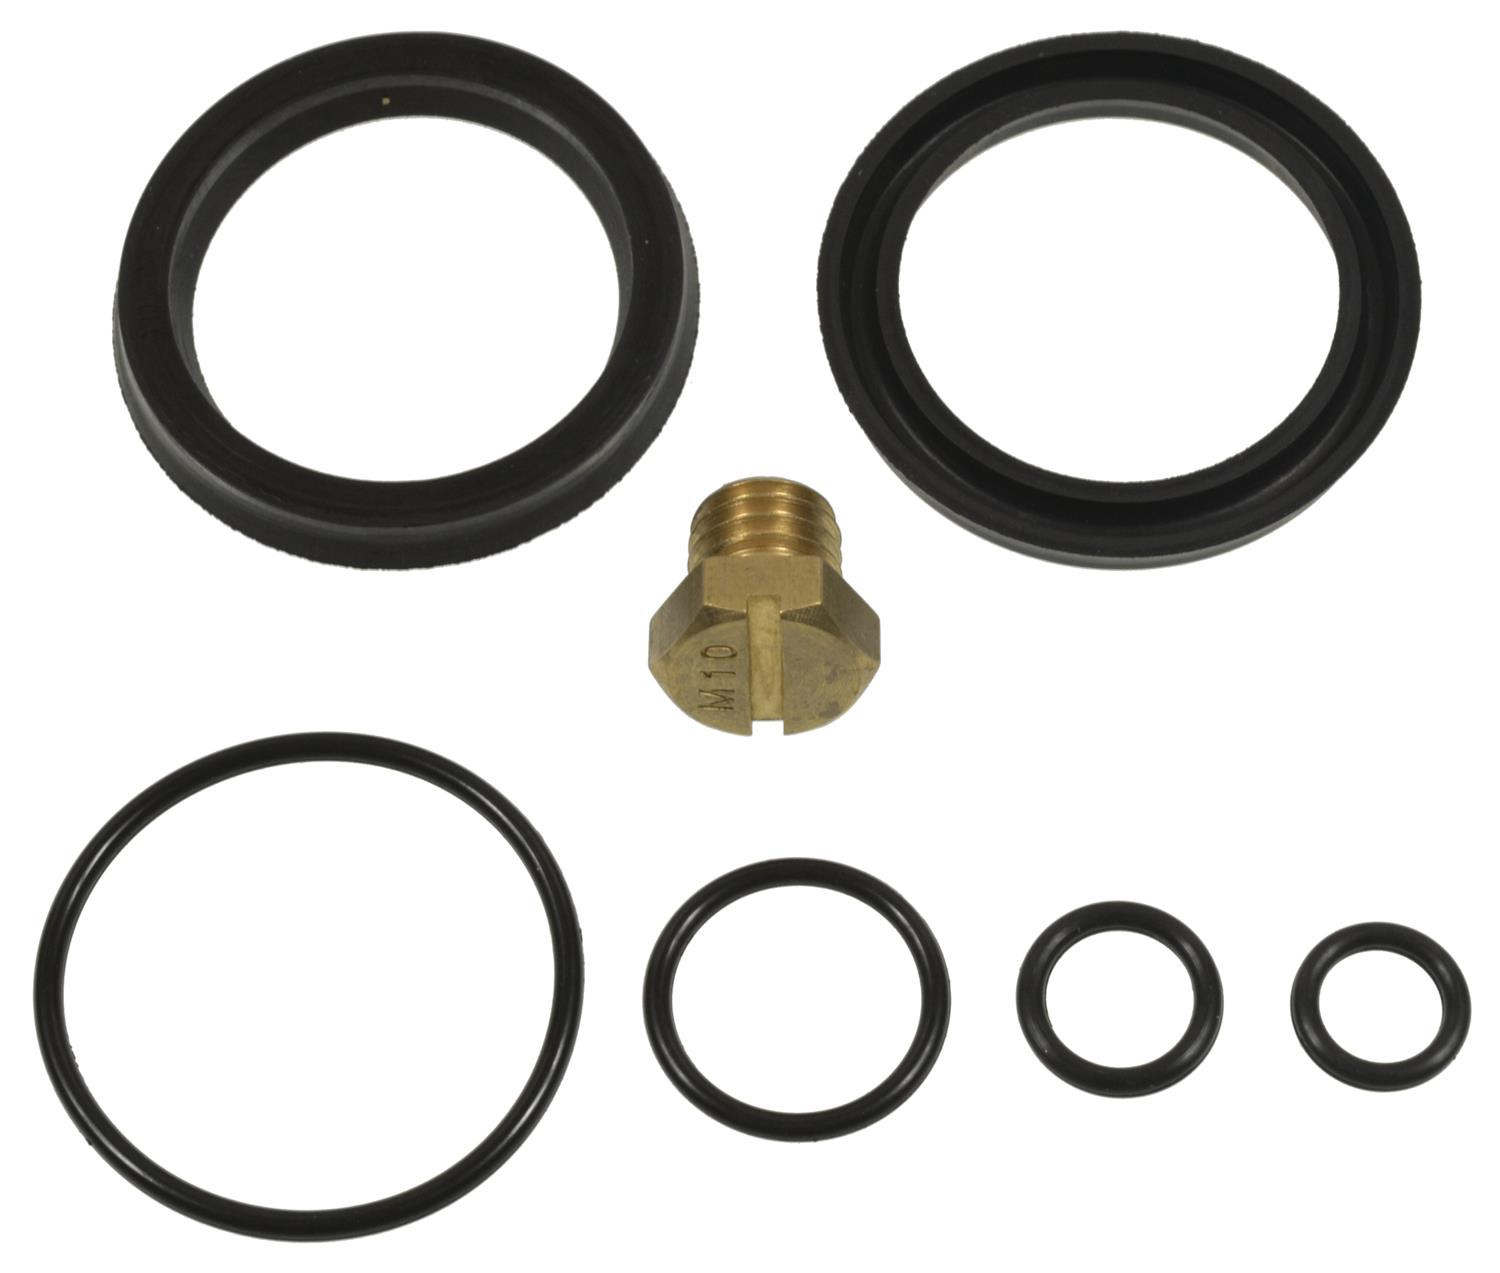 Fuel Pressure Regulator Service Kit